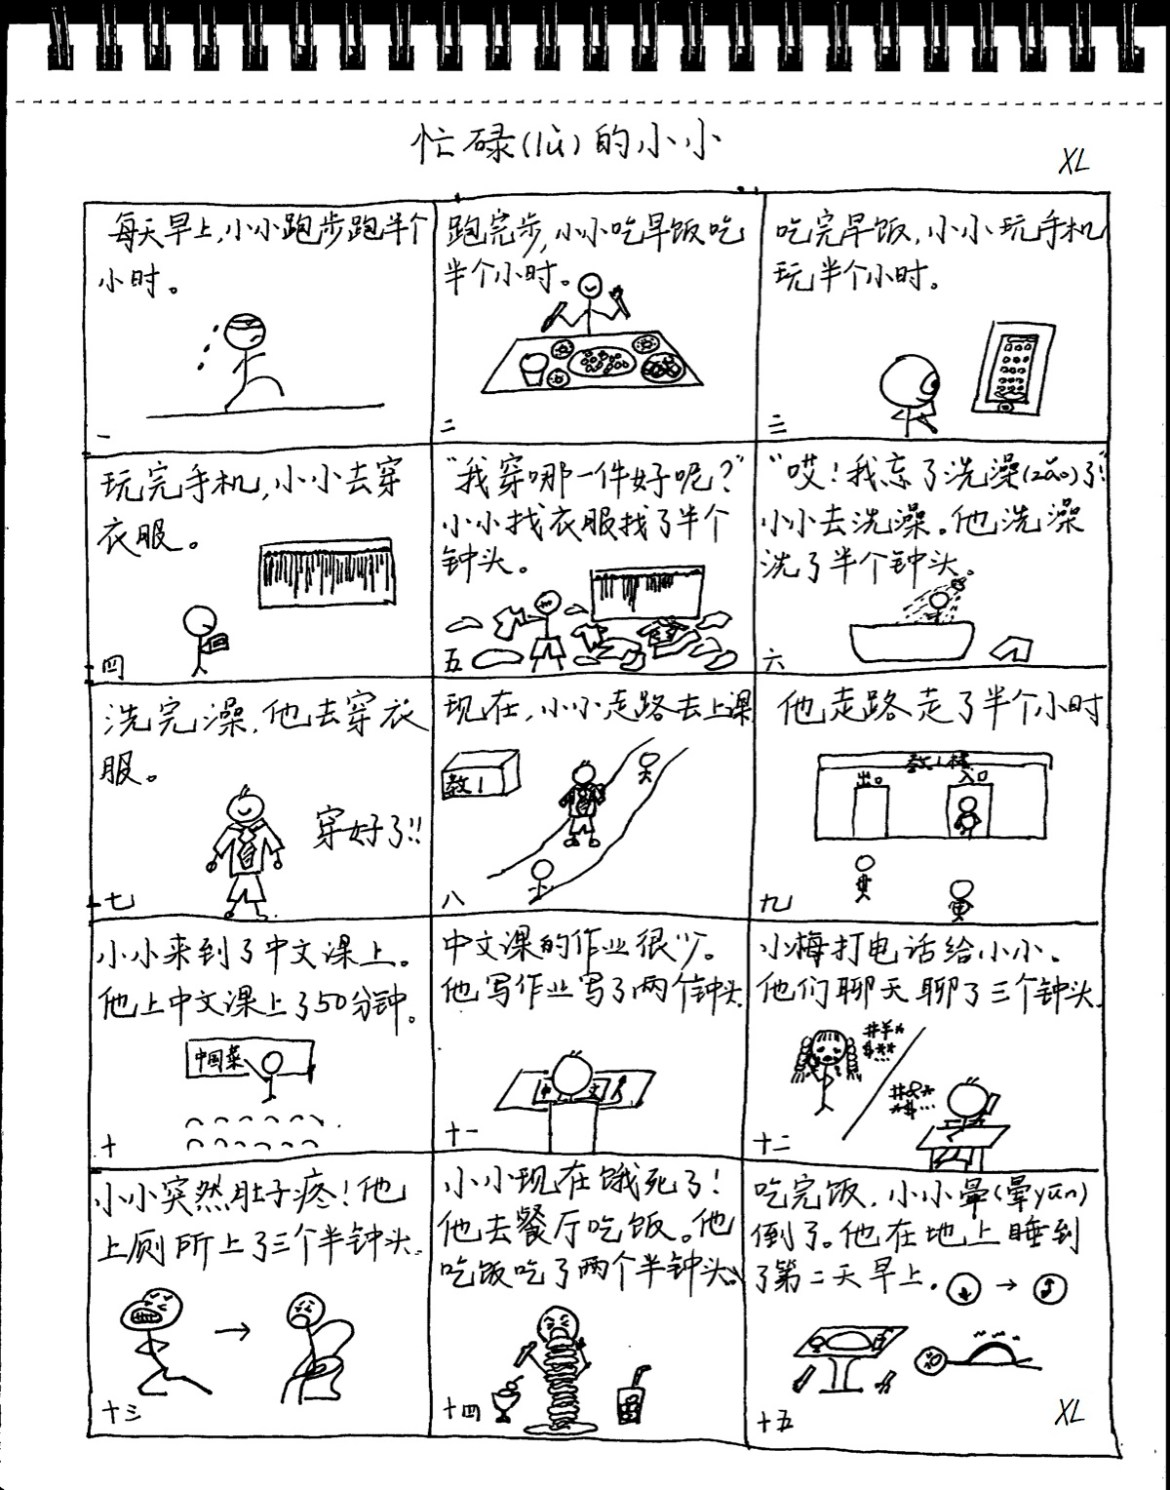 xian_lu_comic_strip_for_cfl_samples5